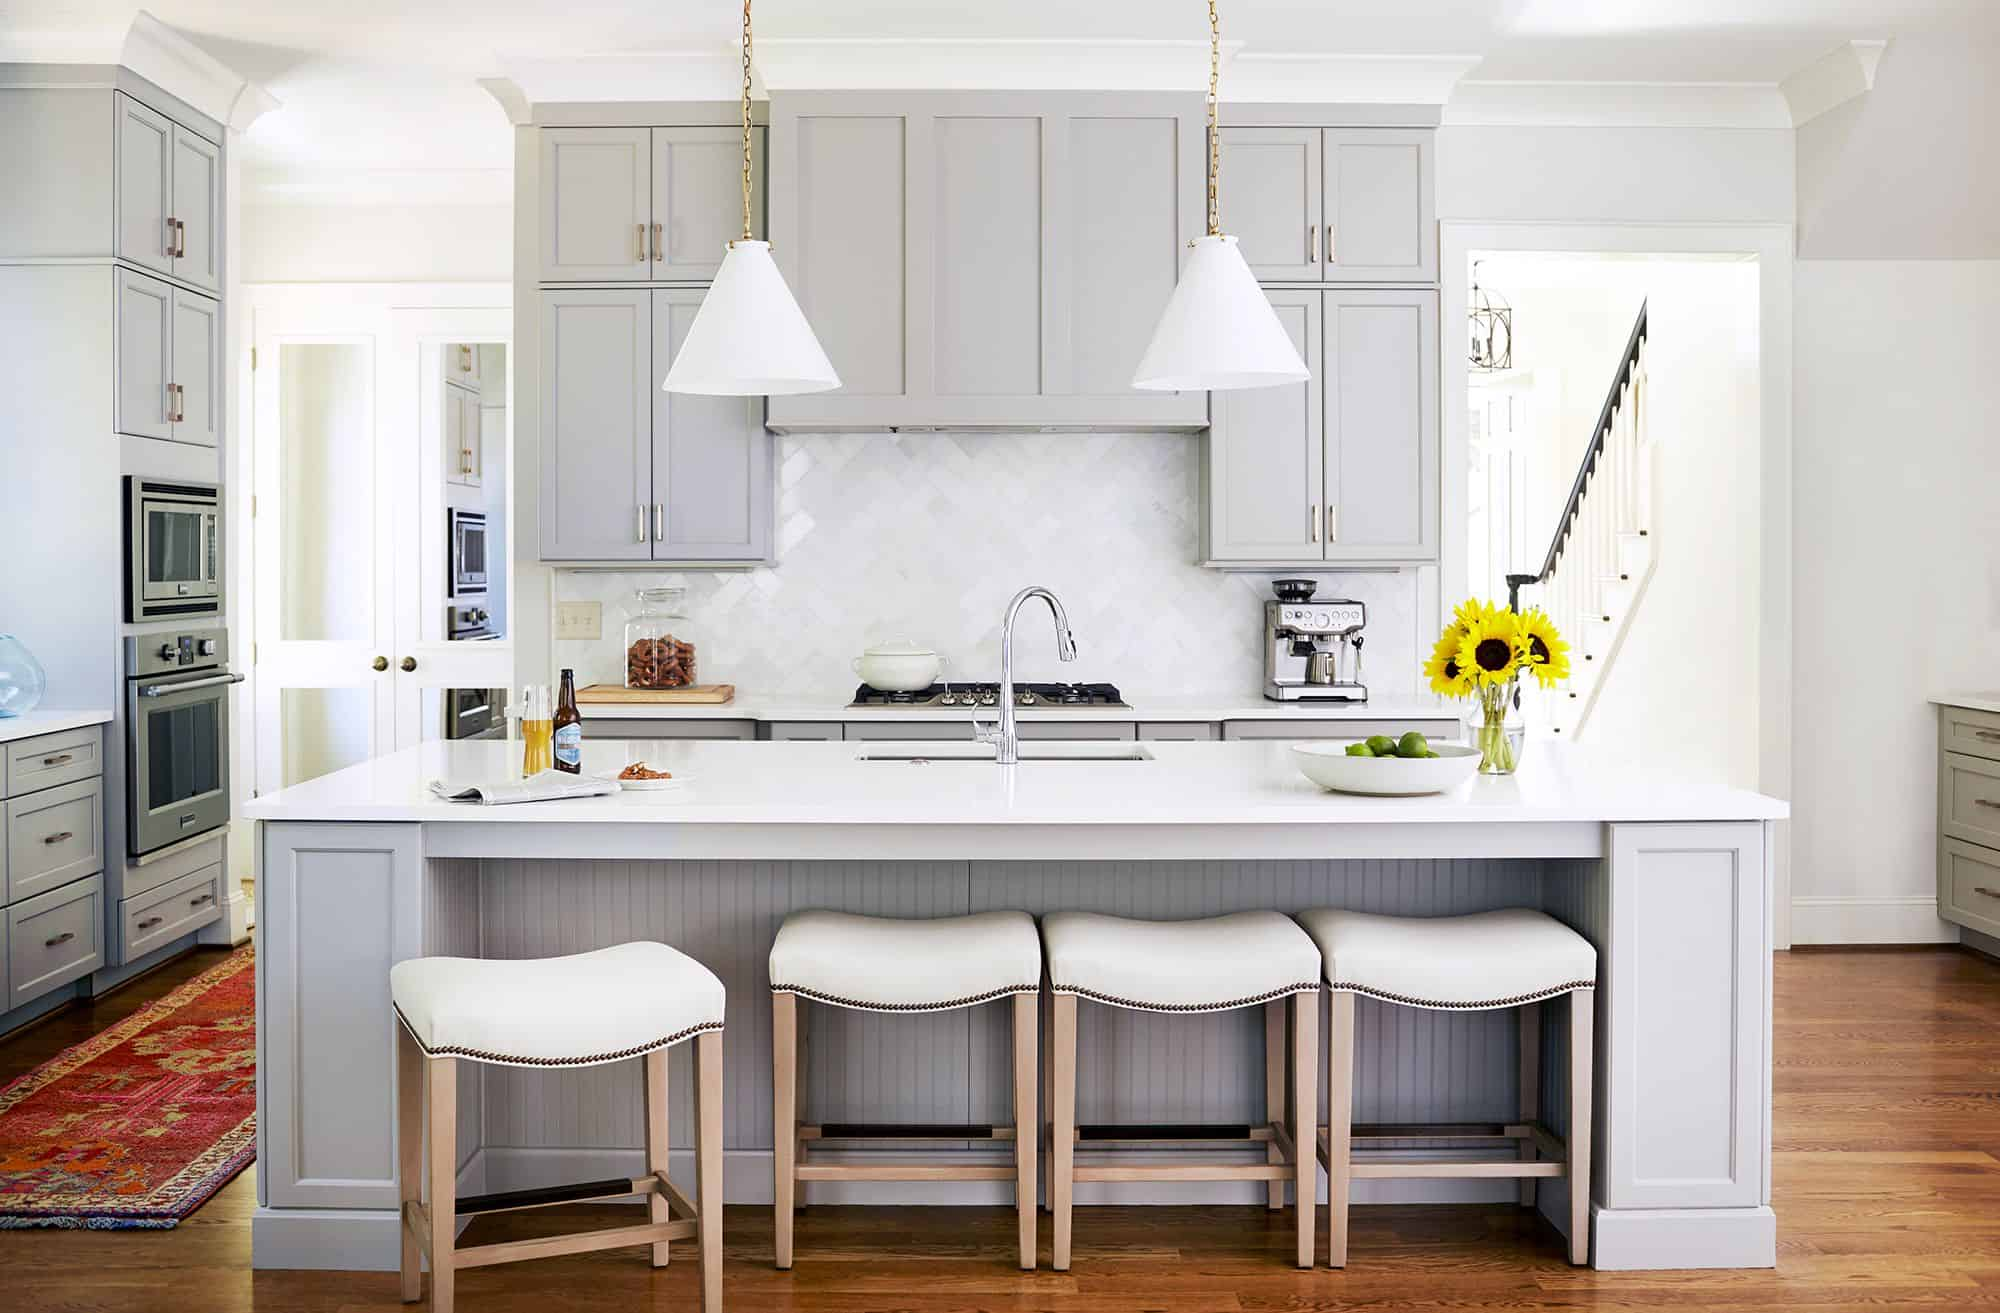 gray kitchen wth concealed hood